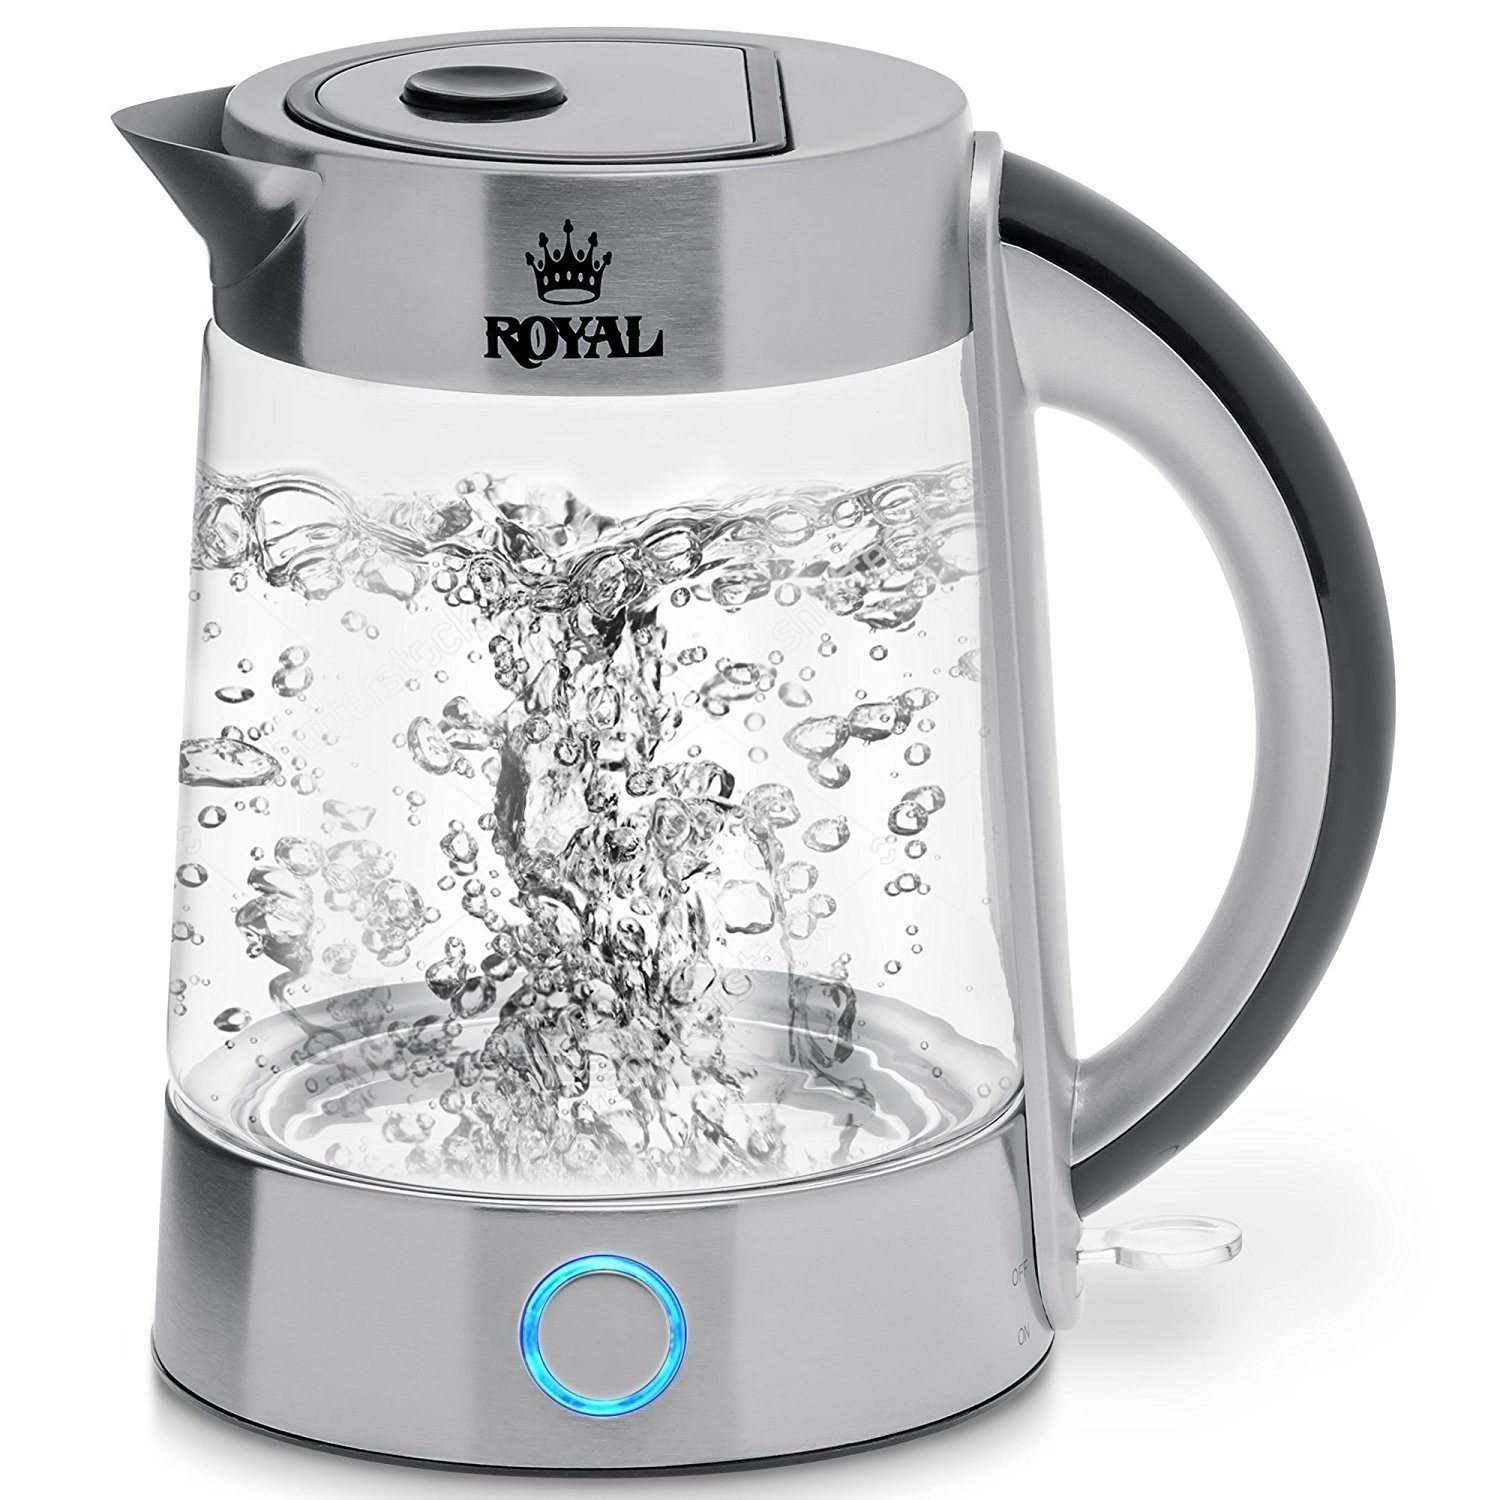 Top 5 Of The Best Tea Kettle For Gas Stove – Reviews & Buyer's Guide 2